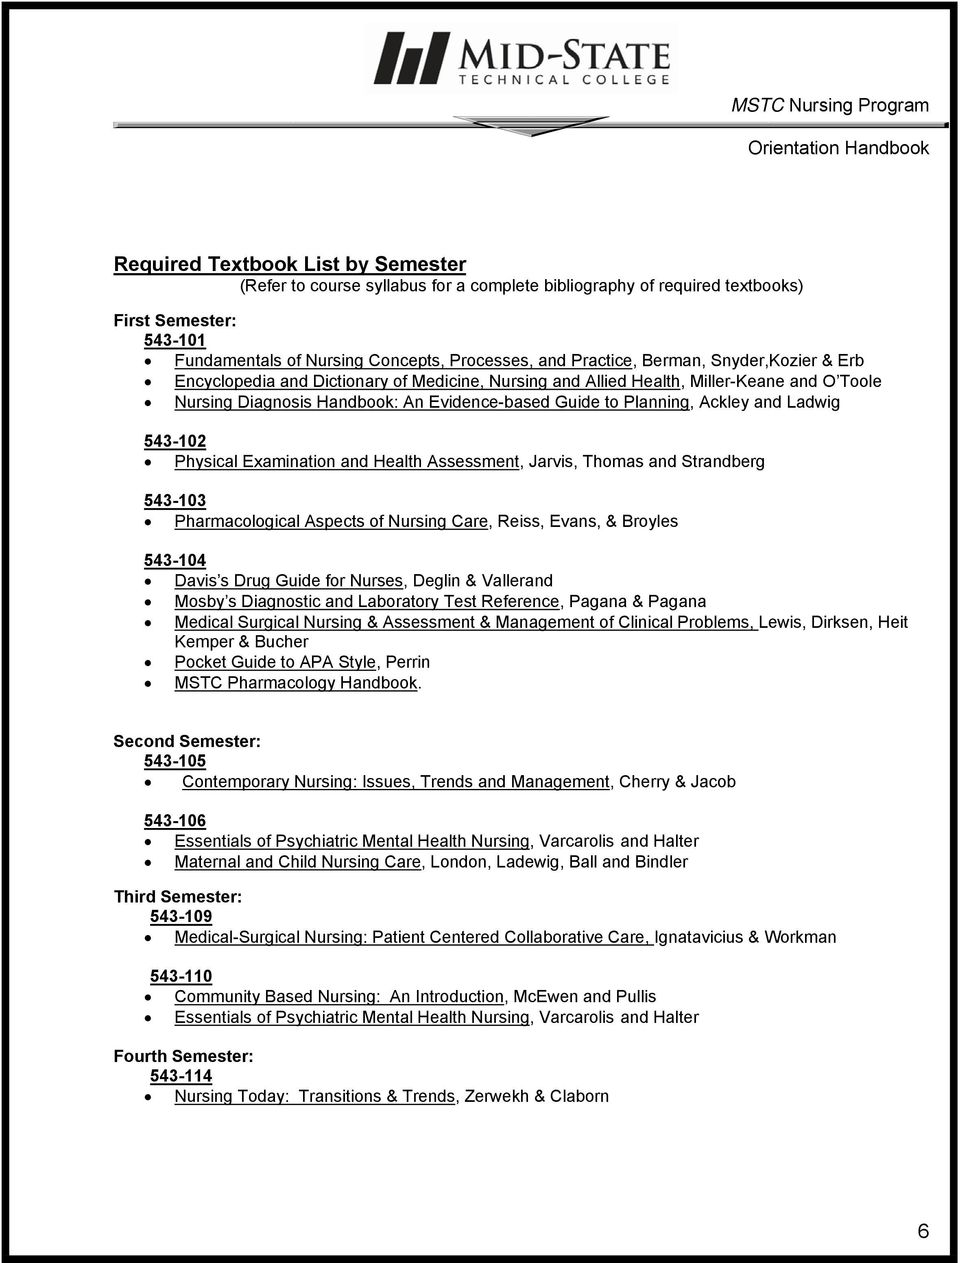 Ladwig 543-102 Physical Examination and Health Assessment, Jarvis, Thomas and Strandberg 543-103 Pharmacological Aspects of Nursing Care, Reiss, Evans, & Broyles 543-104 Davis s Drug Guide for